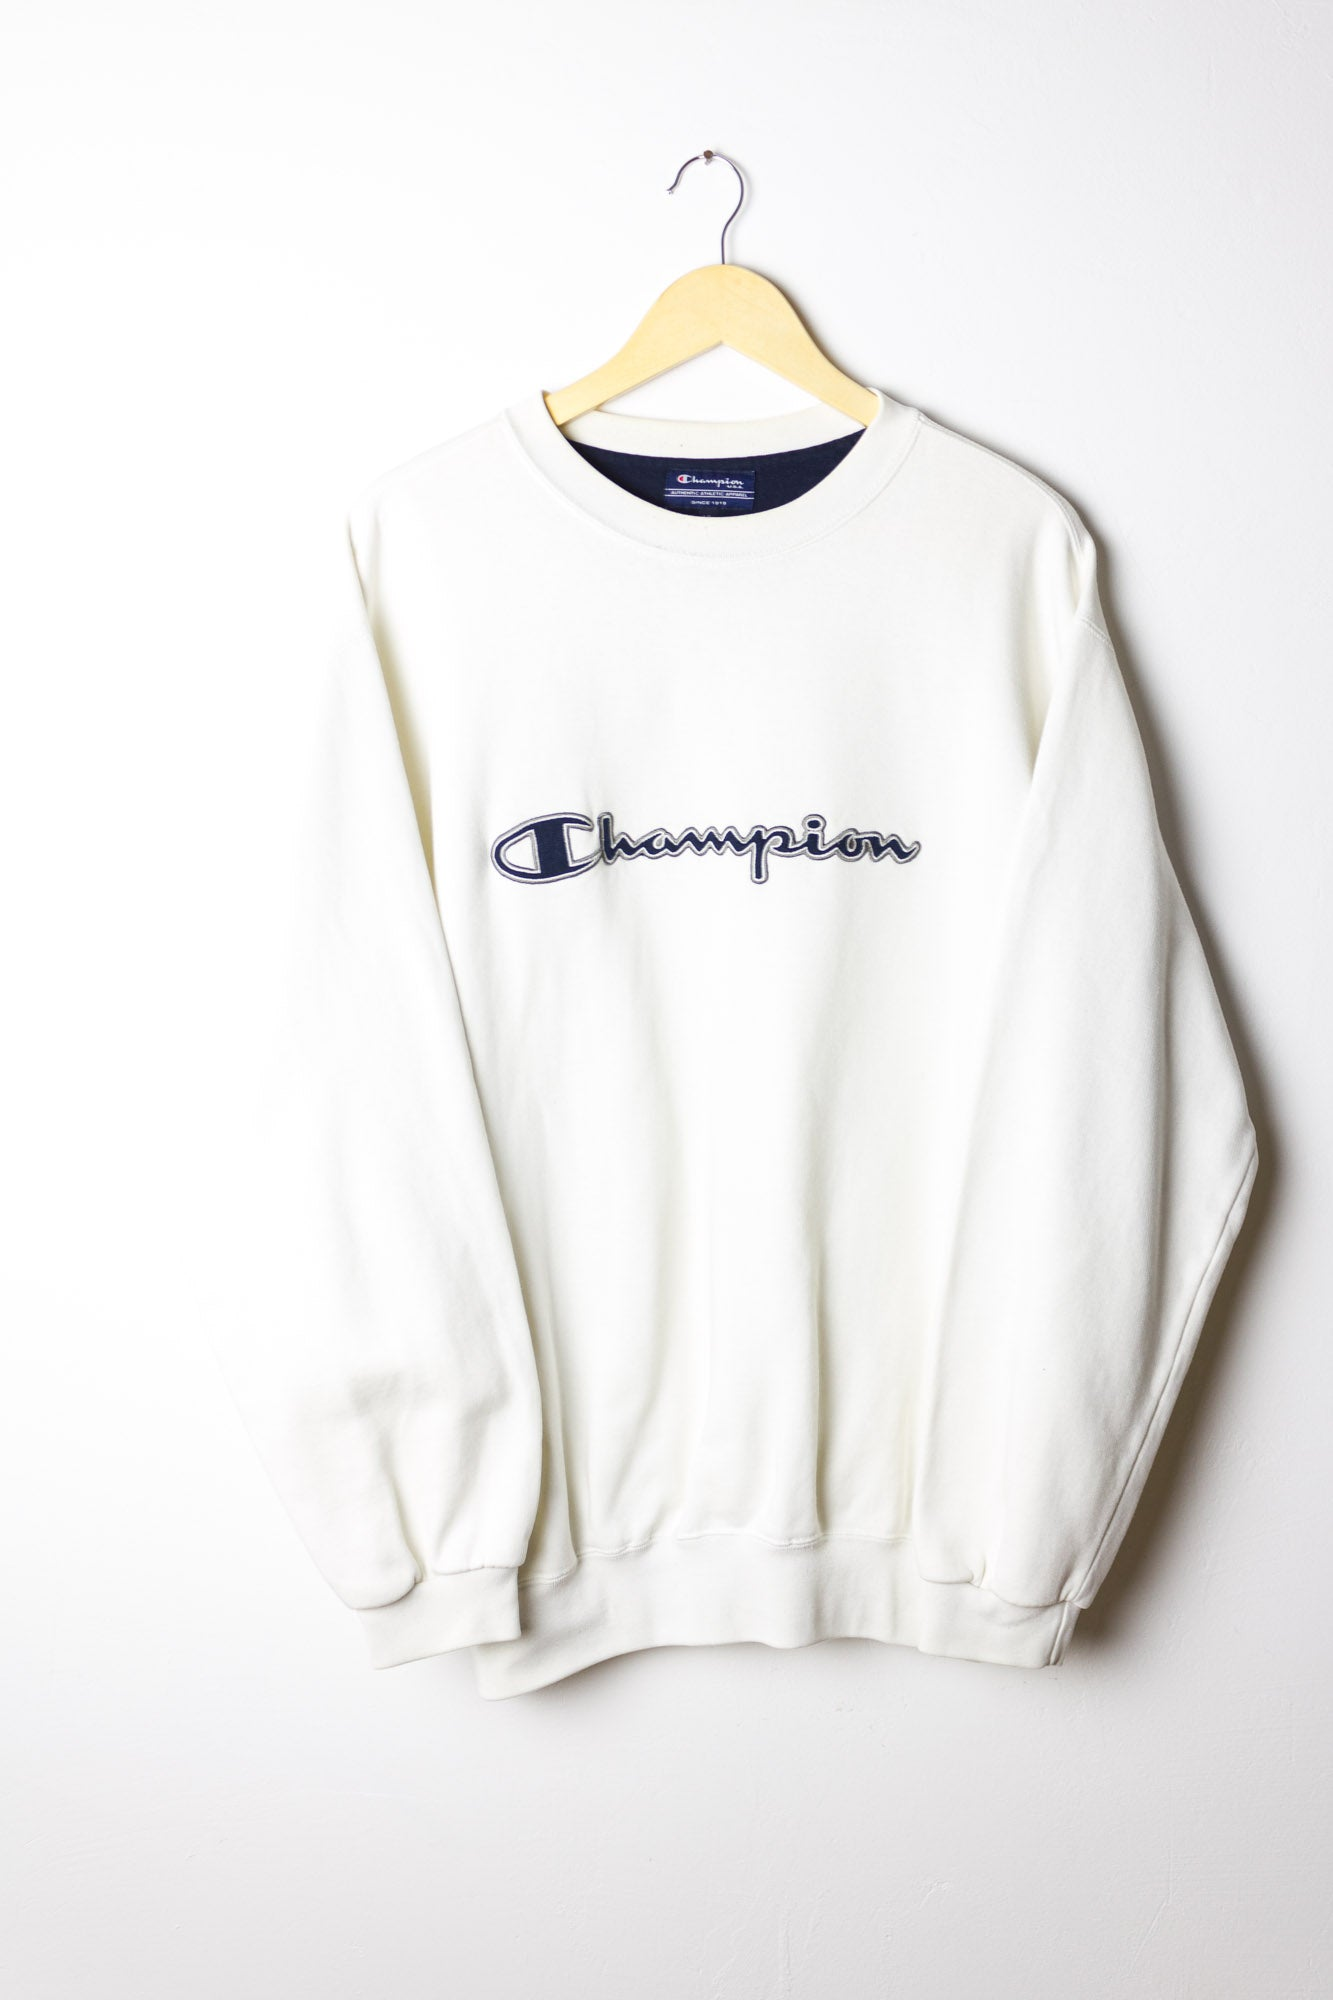 Vintage Champion Sweatshirt Size XL